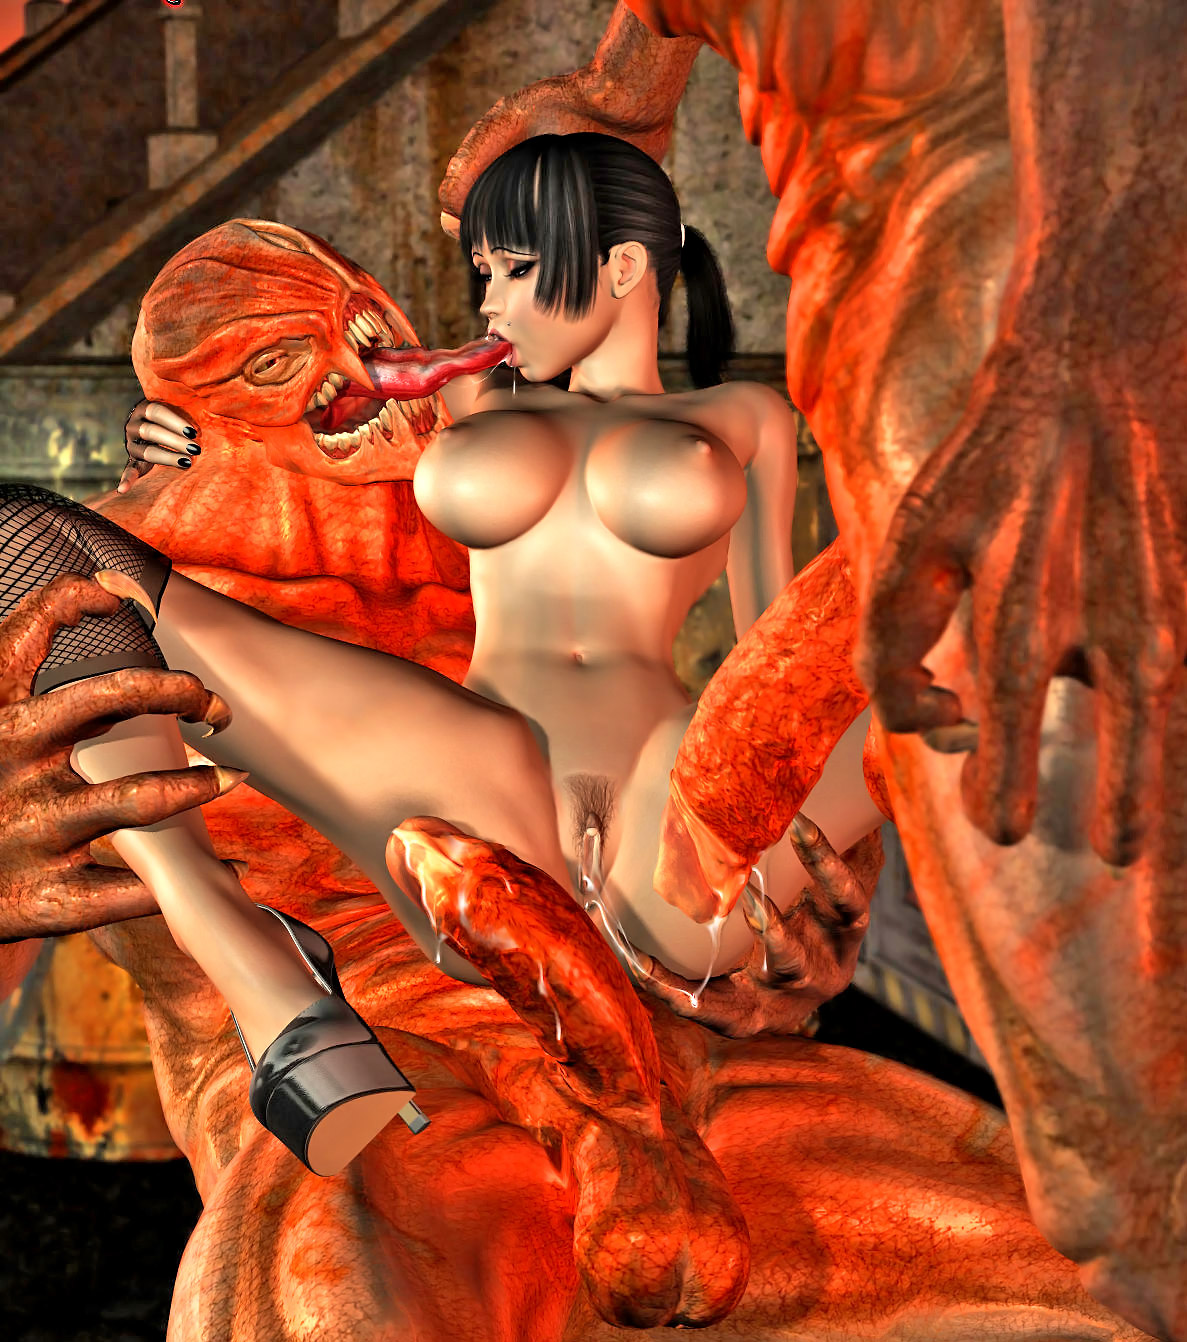 3d demons monsters and girl porn gallery sex thumbs